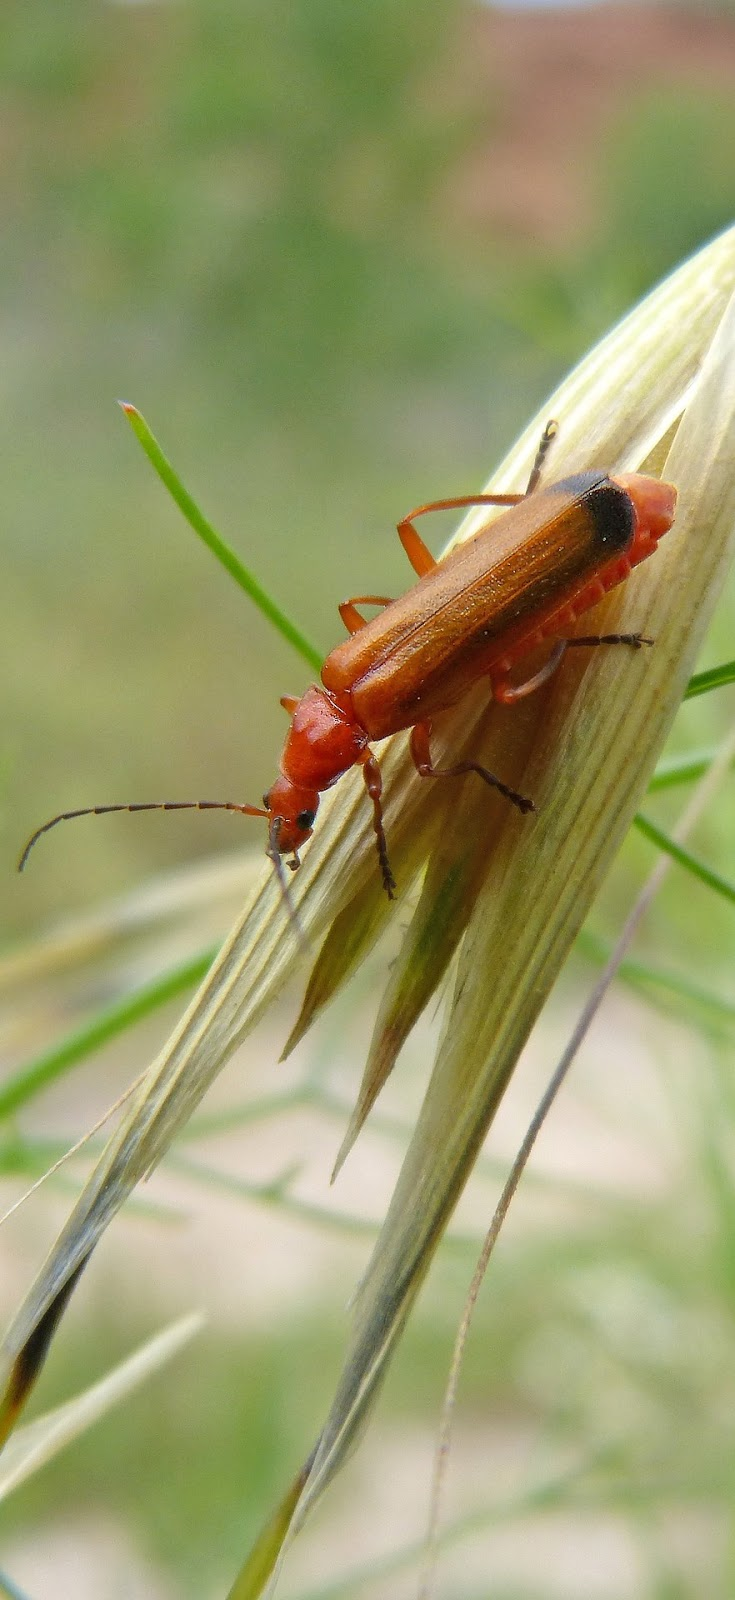 Picture of black tipped orange beetle.